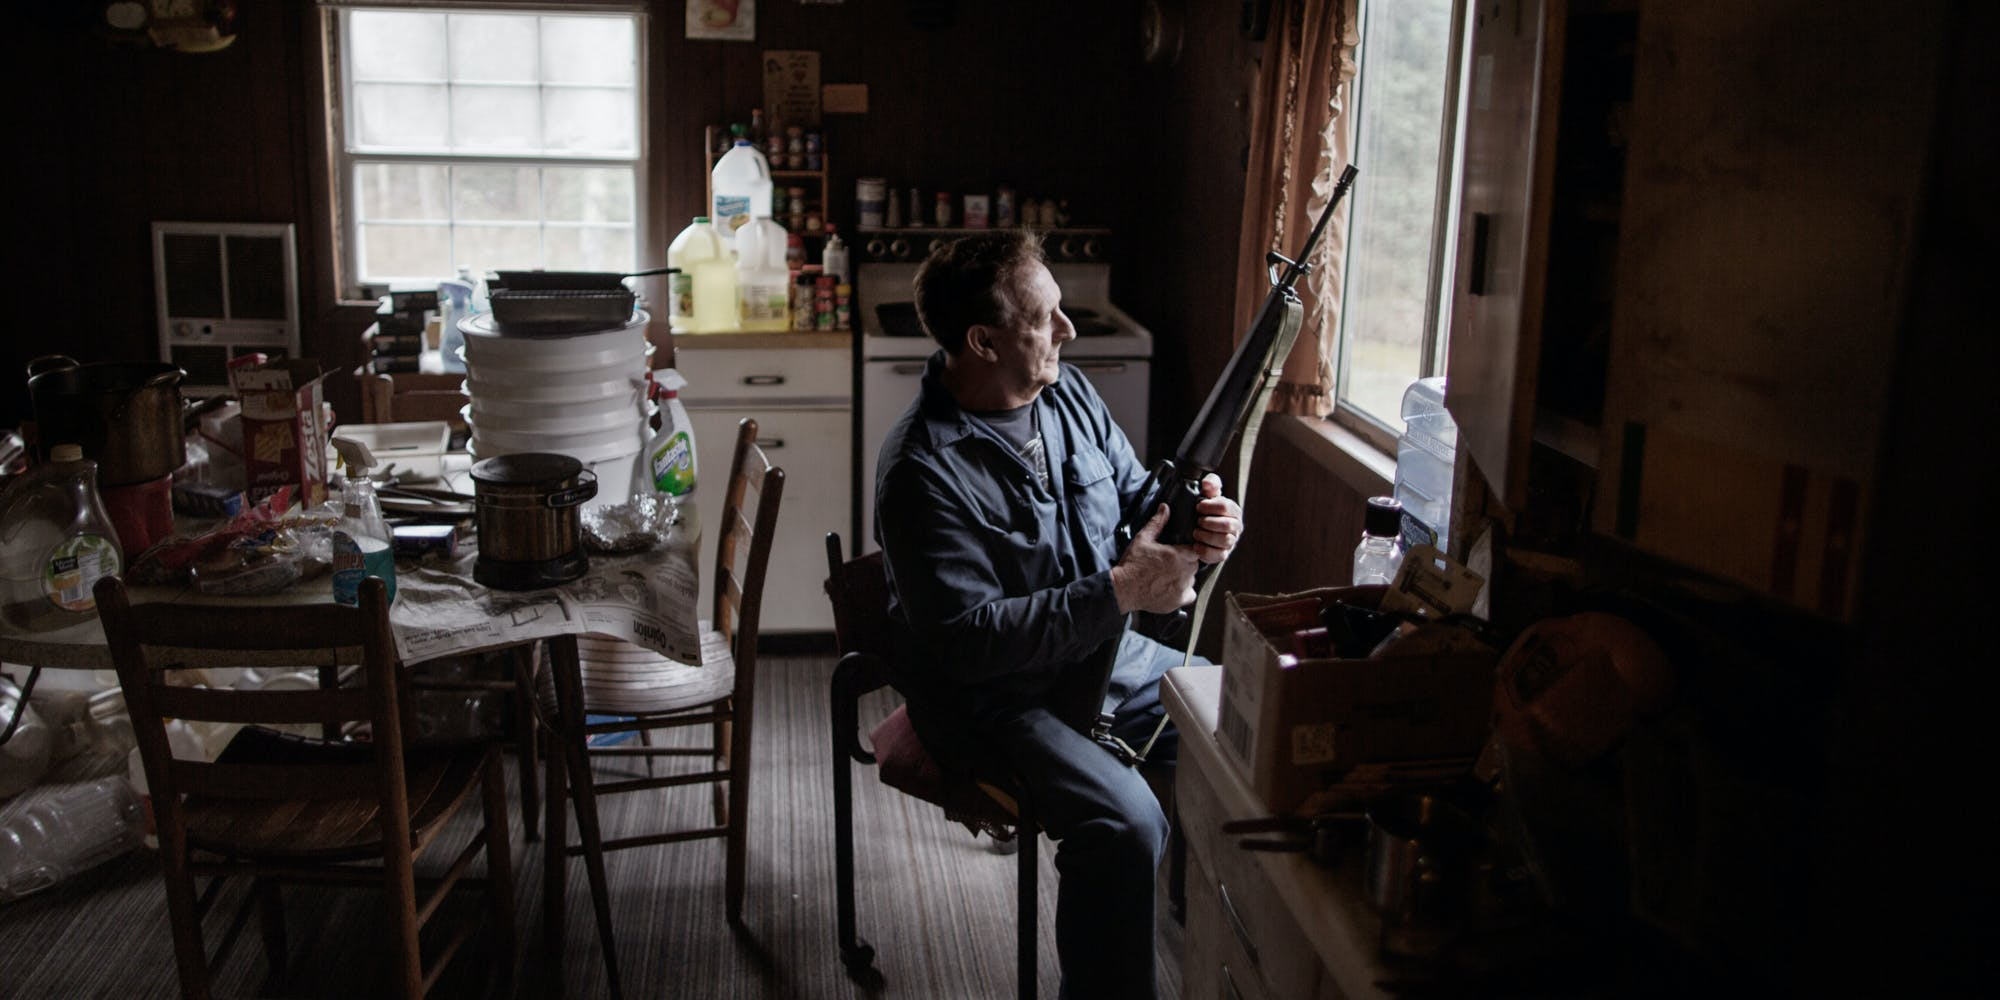 Man armed with a rifle sitting at a window of the West Virginia's Rust Belt